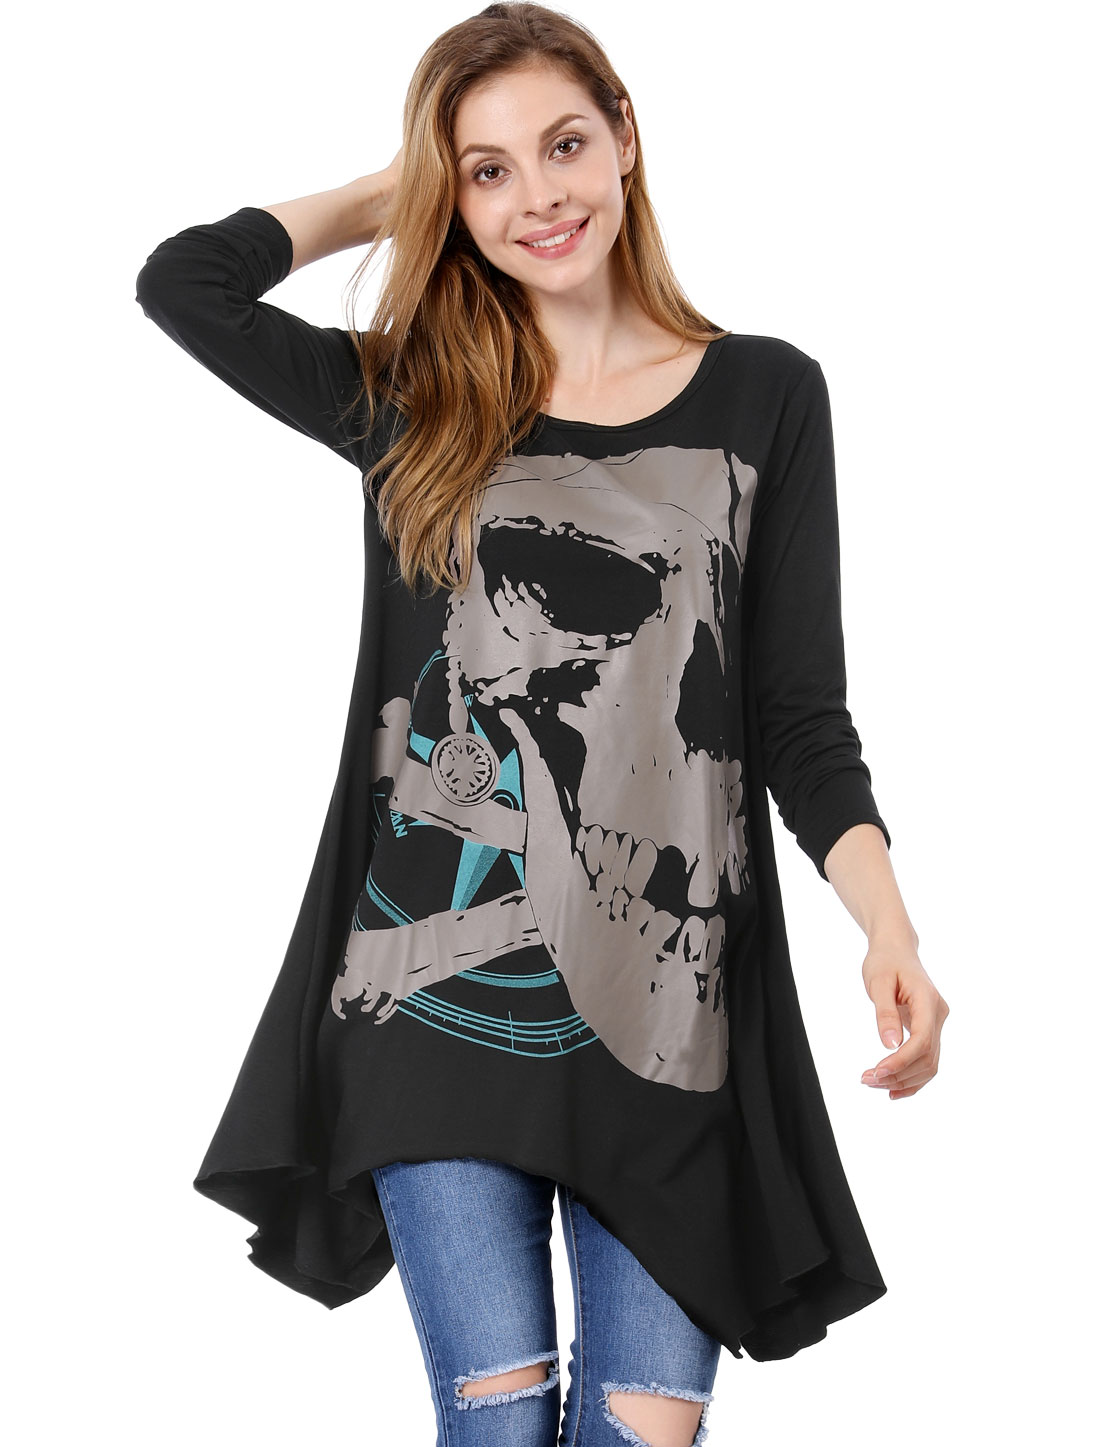 Lady Stylish Skull Printed Front Irregular Hem Black Top Shirt XL